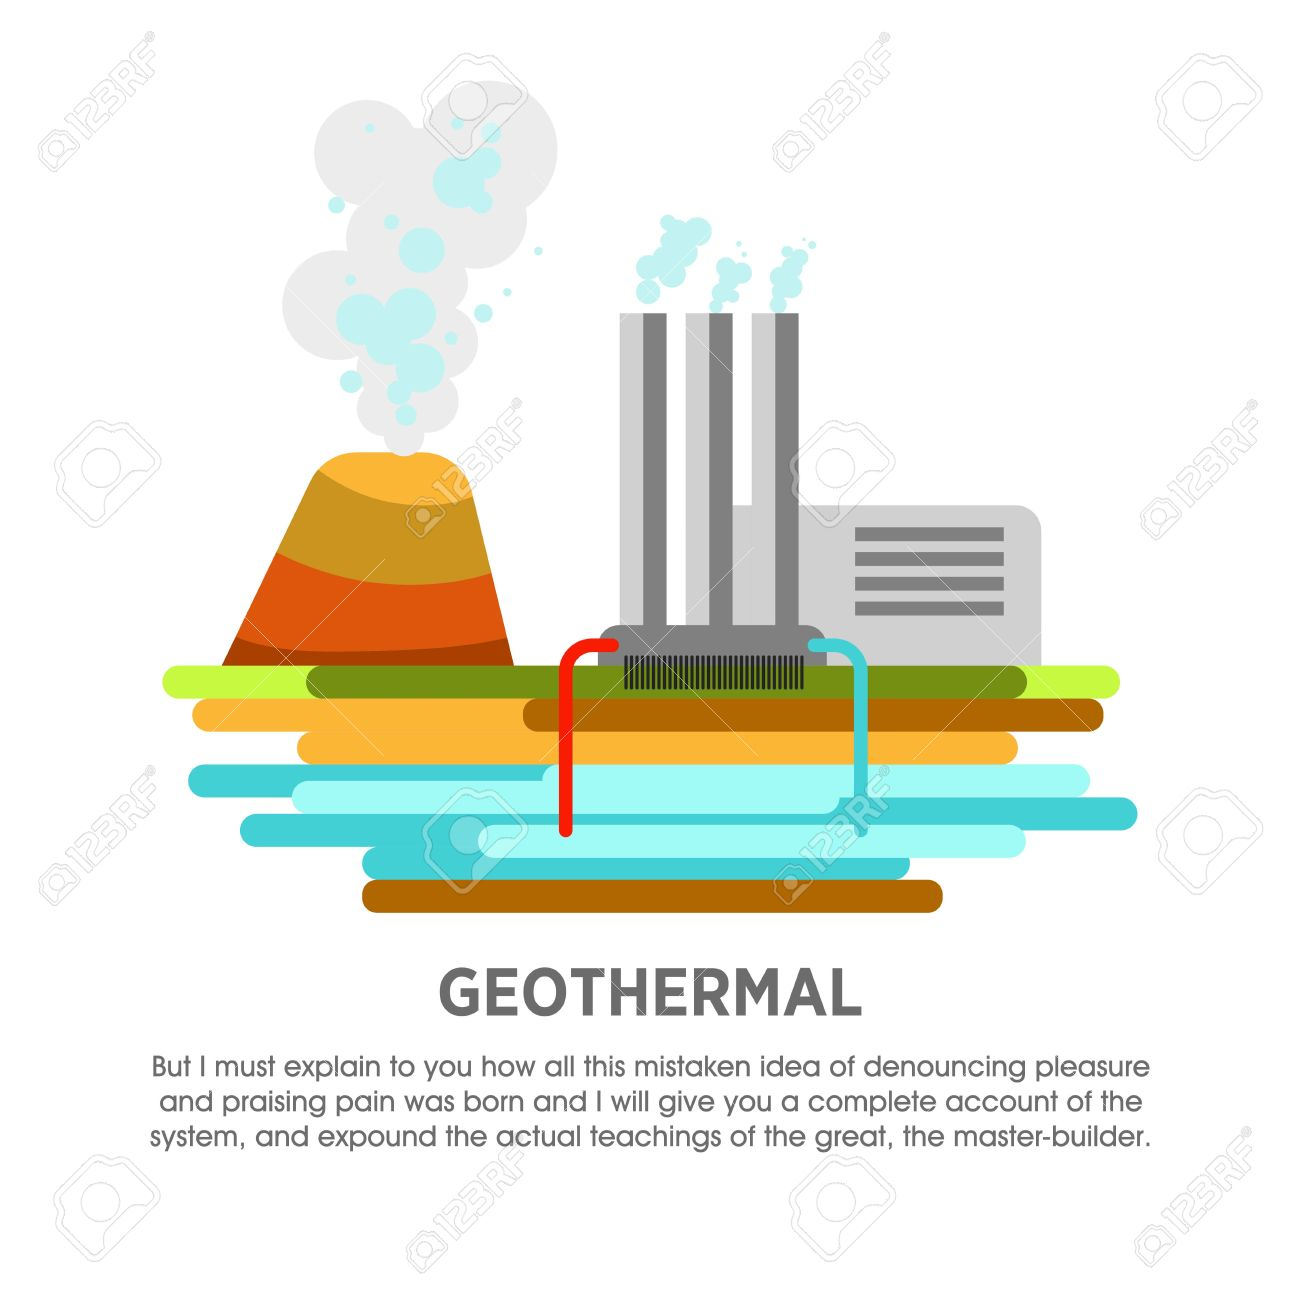 hight resolution of geothermal power station earth thermal heat energy vector flat illustration stock vector 71969688